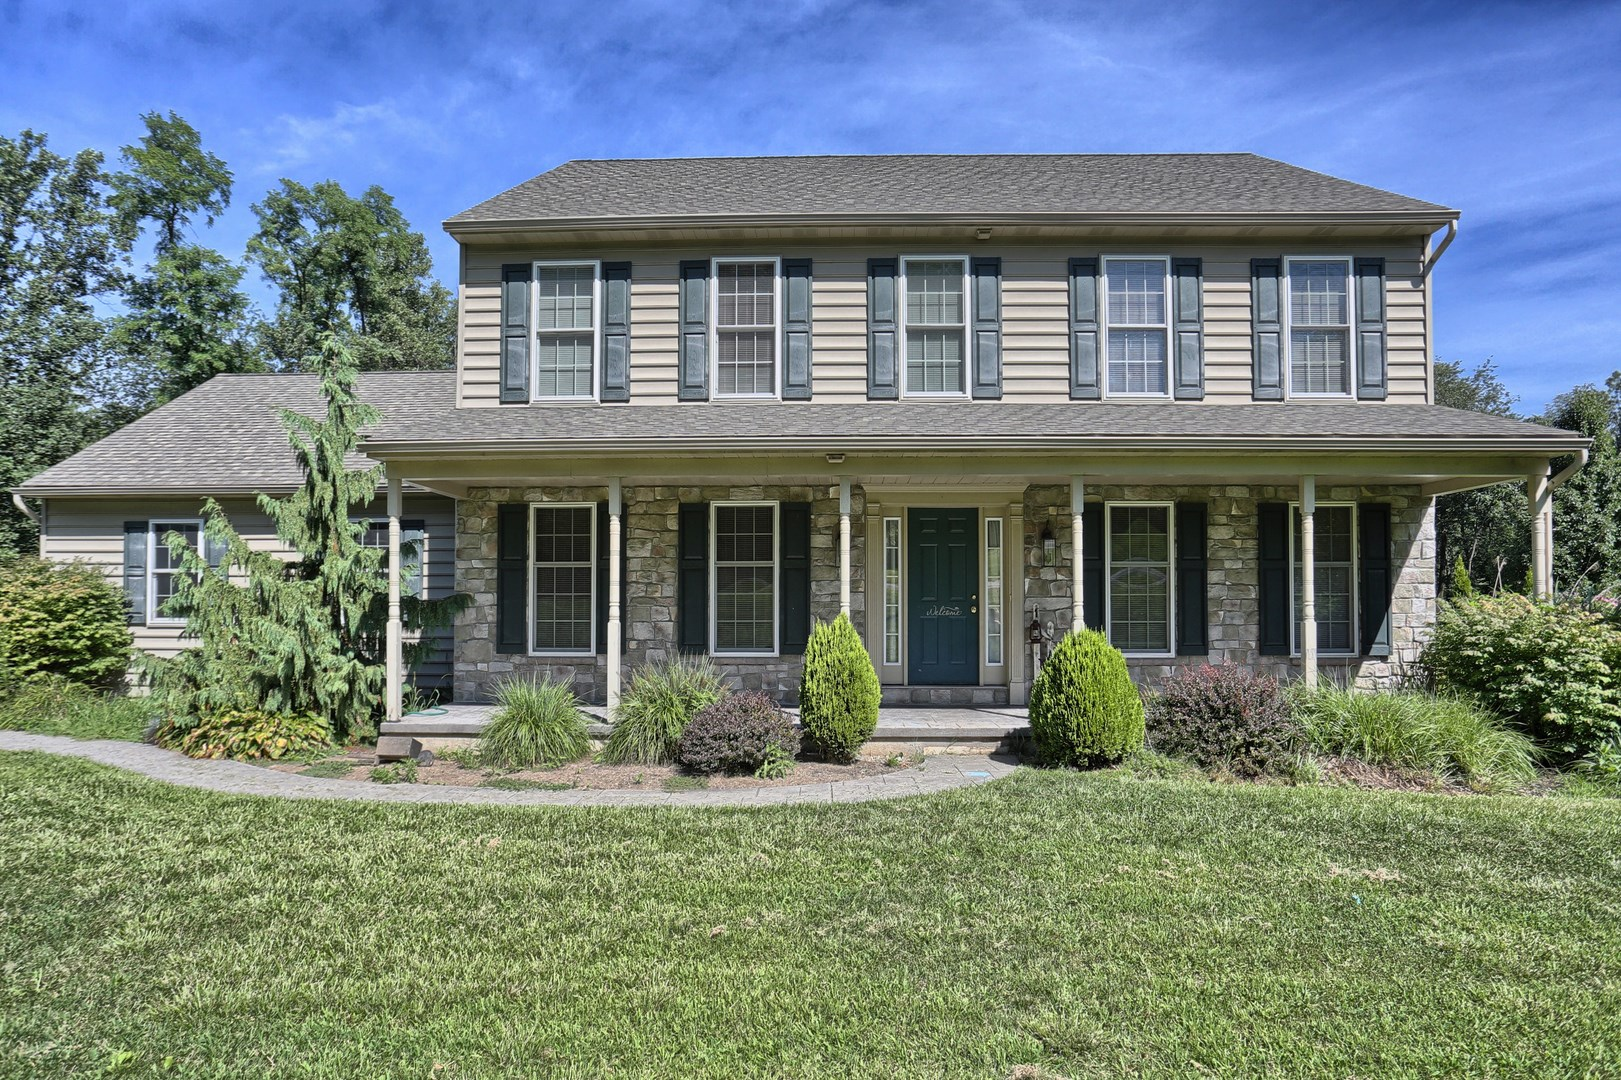 Single Family Home for Sale at 417 Martic Heights Drive Holtwood, Pennsylvania 17532 United States